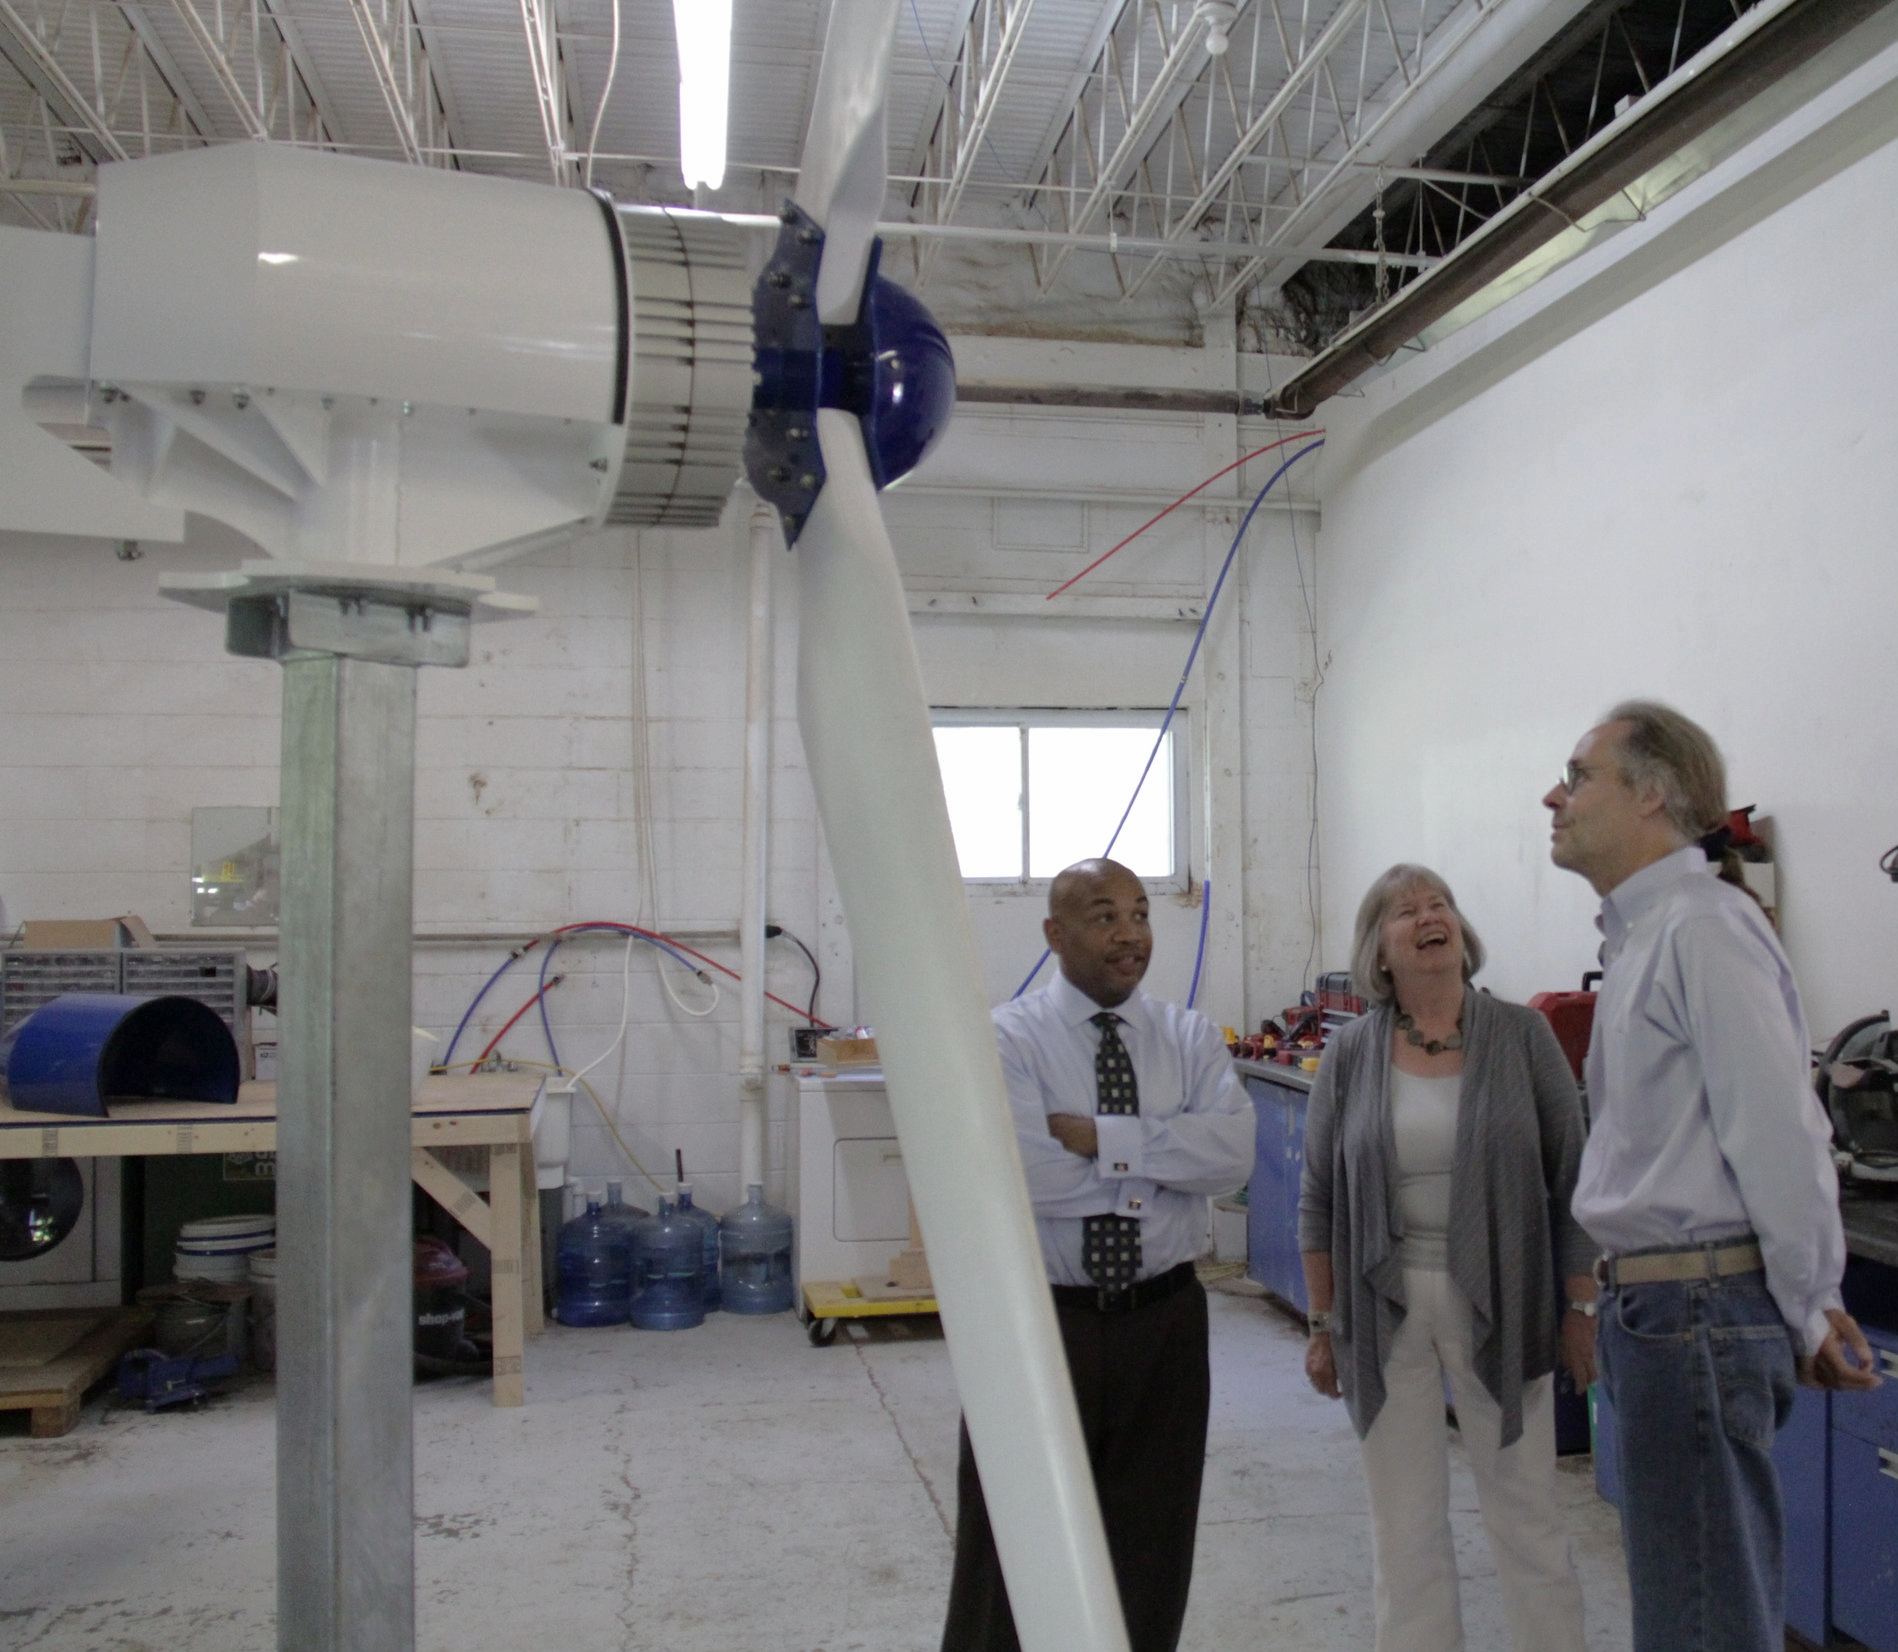 Carl Heastie, D-Bronx, left, speaker of the NY State Assembly, and Assemblywoman Barbara Lifton, D-Ithaca, talk to Weaver Wind Energy president Art Weaver at an open house.